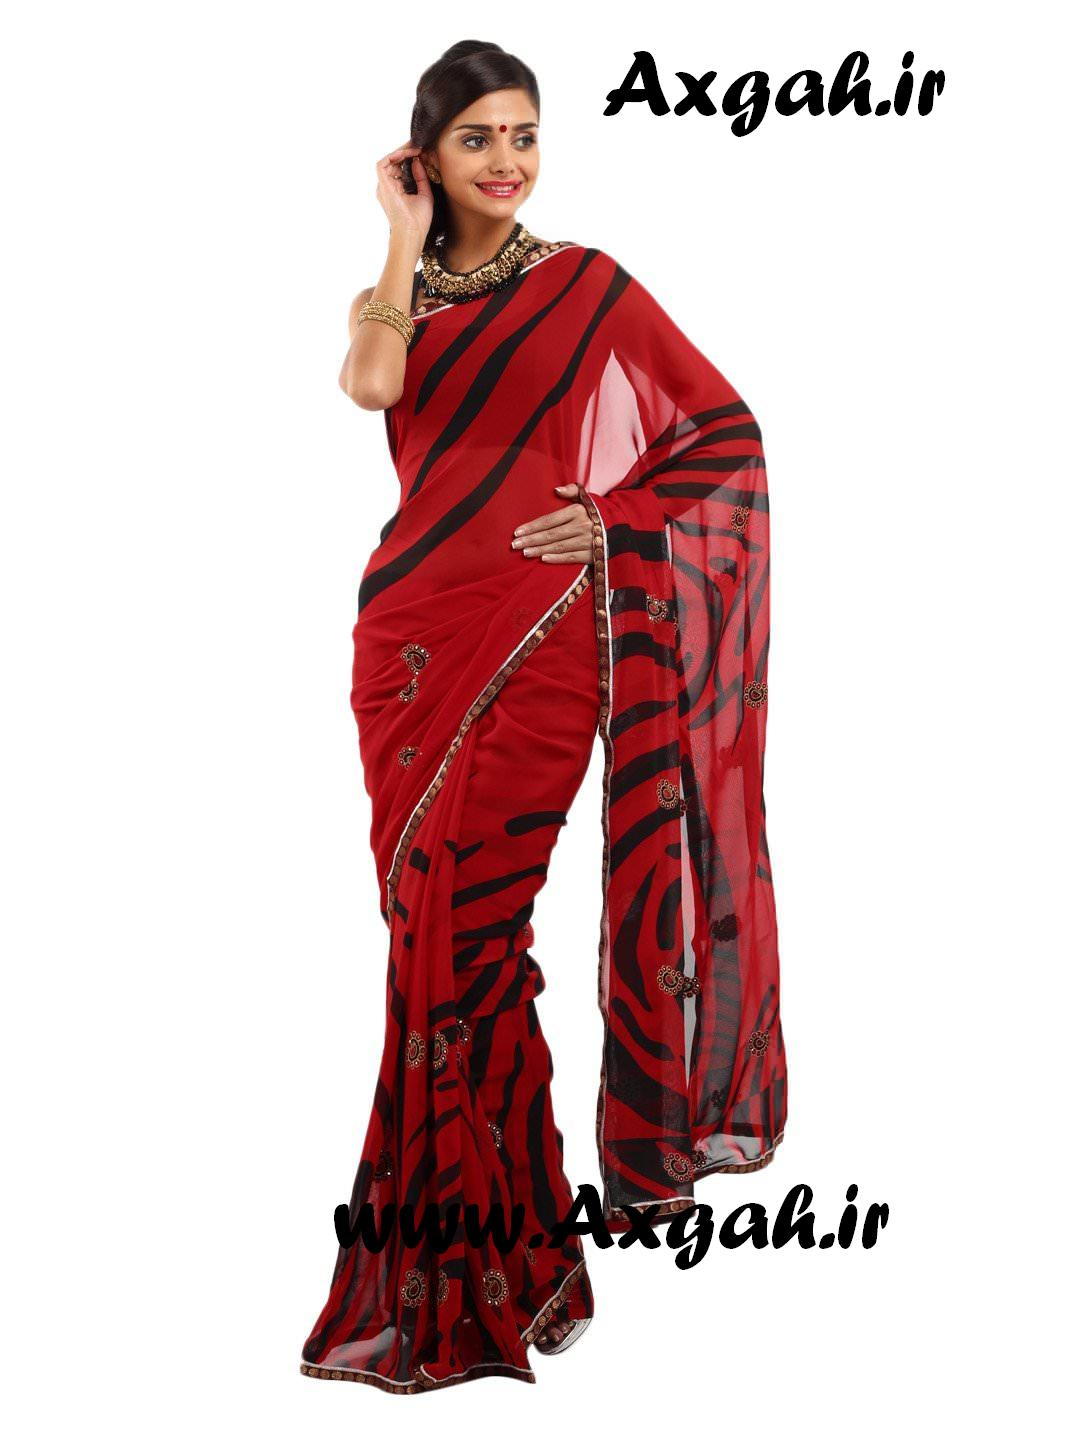 Indian Women Red and Black Printed Fashion Saree f25e8e5193e26b2a901b57fbe4287a8c images 1080 1440 mini مدل های لباس هندی 2013